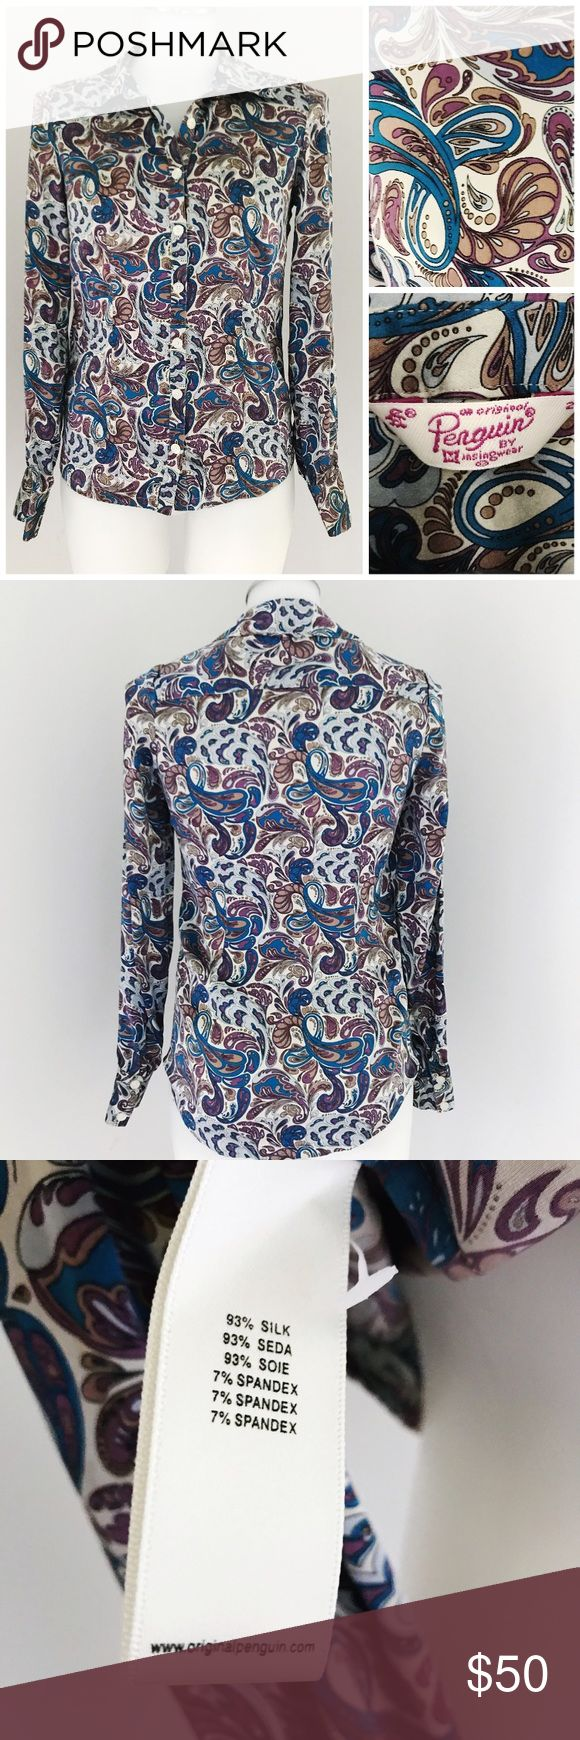 Original Penguin Purple Blue Paisley Buttoned Top Beautiful Silk long sleeve, button down Paisley print shirt. Excellent preowned condition. Great for the working professional or pair with blue jeans for a more casual look. Original Penguin Tops Button Down Shirts